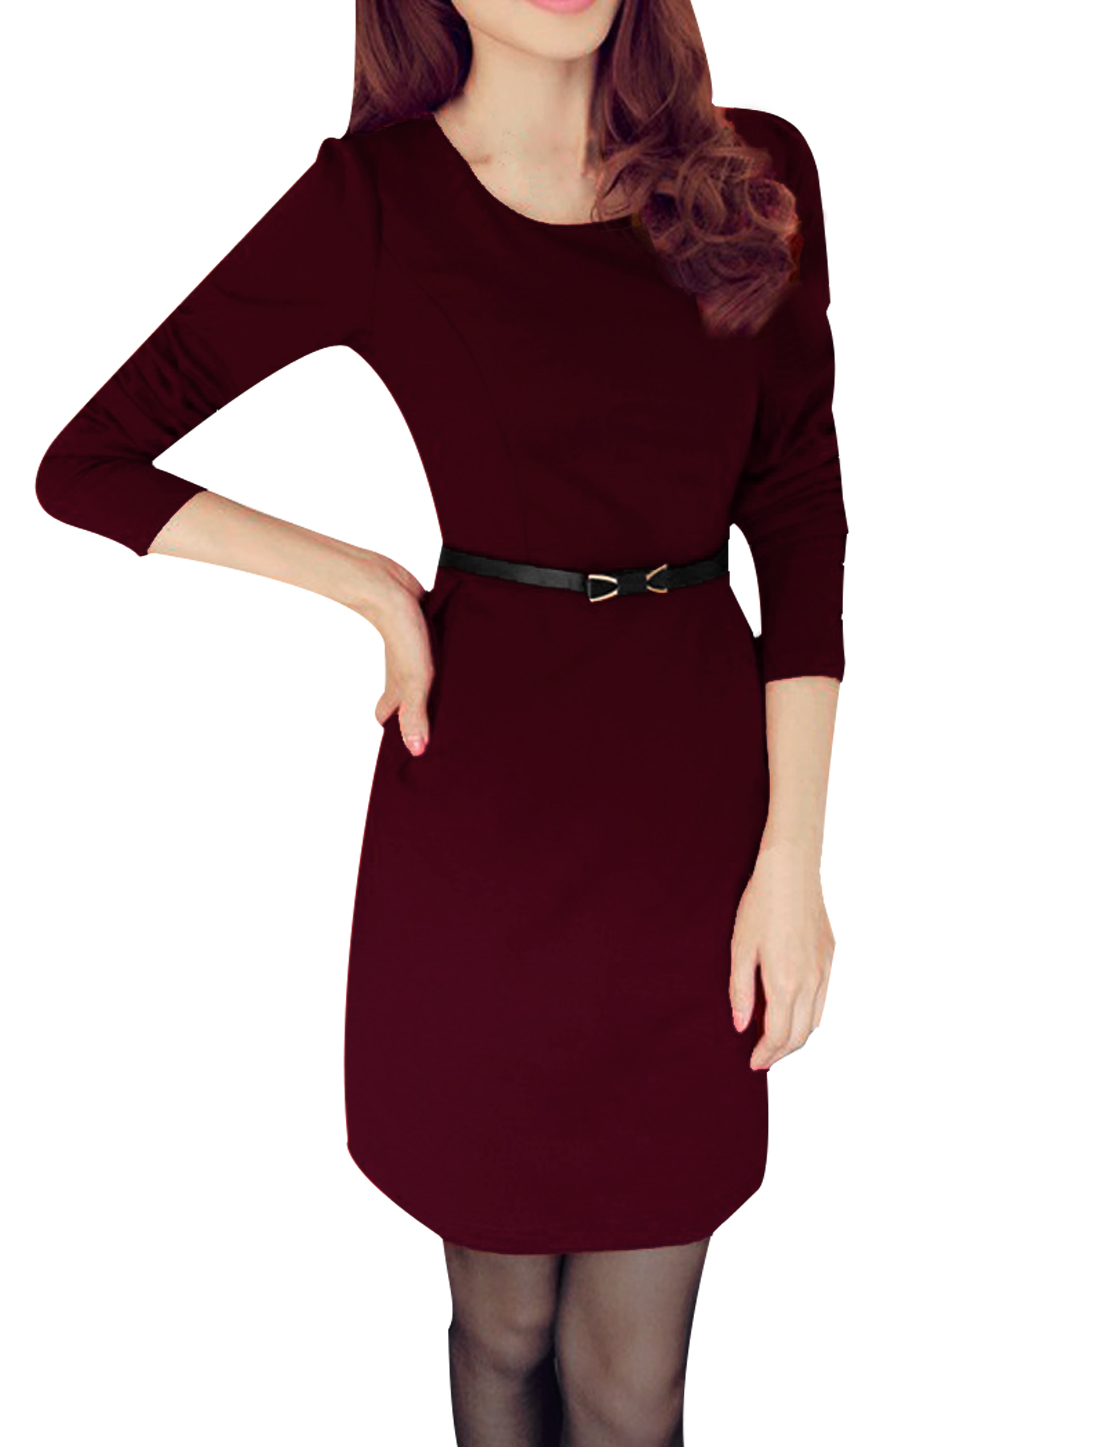 Dark Red Scoop Neck Long Sleeve Ladieswear Dress W Bow Knot Belt XS